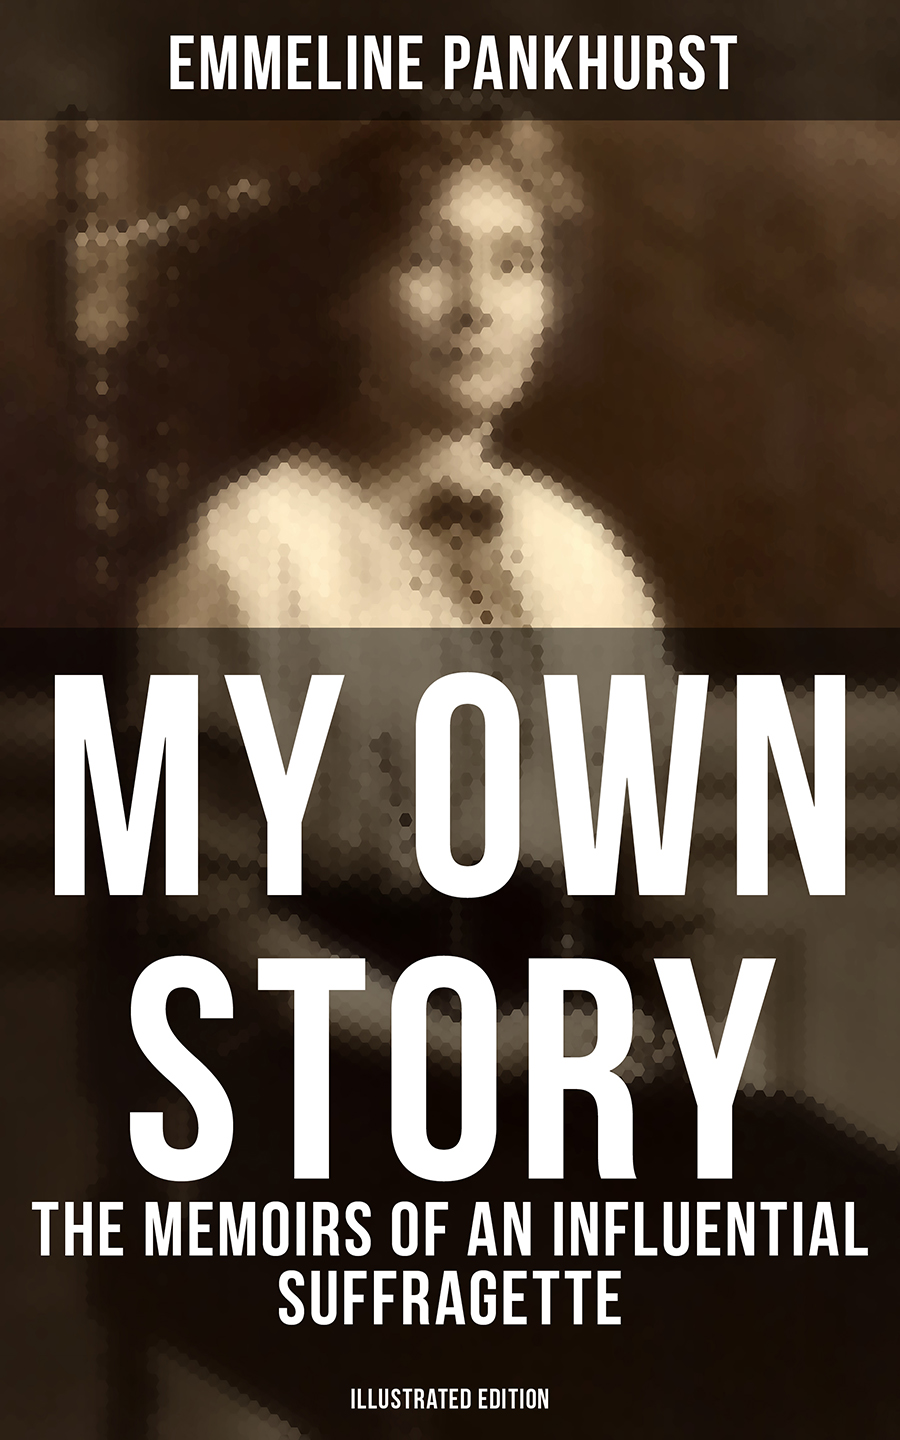 Emmeline Pankhurst MY OWN STORY: The Memoirs of an Influential Suffragette (Illustrated Edition) musicals the definitive illustrated story